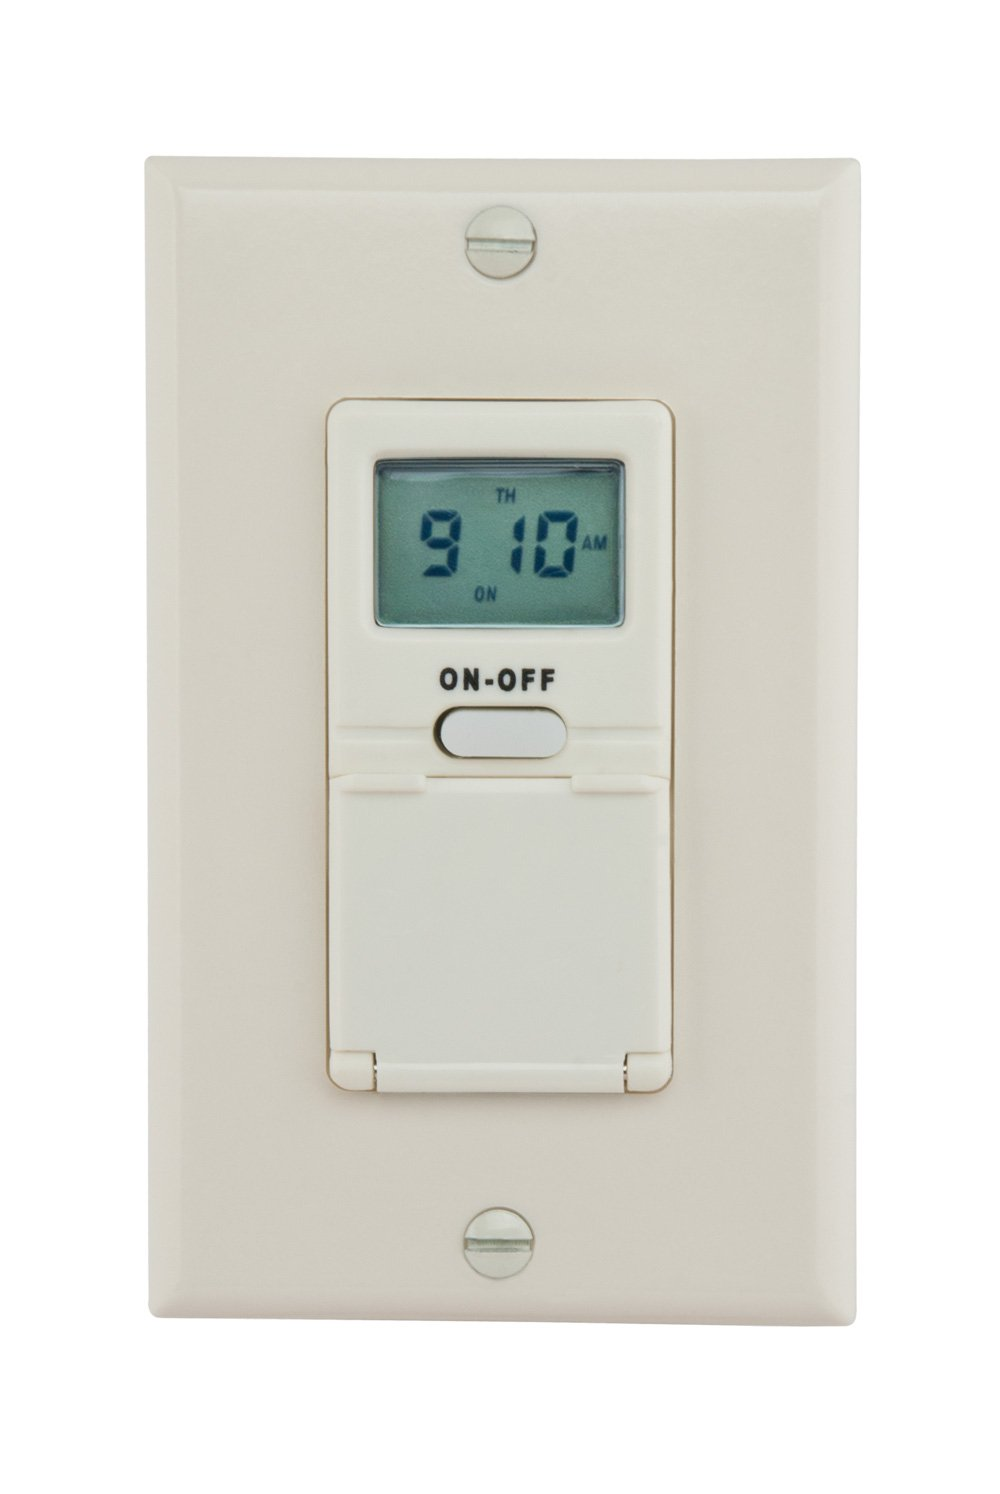 Reliance Controls Corporation WE7000A Digital 7-Day in-Wall Timer Back up Battery, Light Almond by Reliance Products